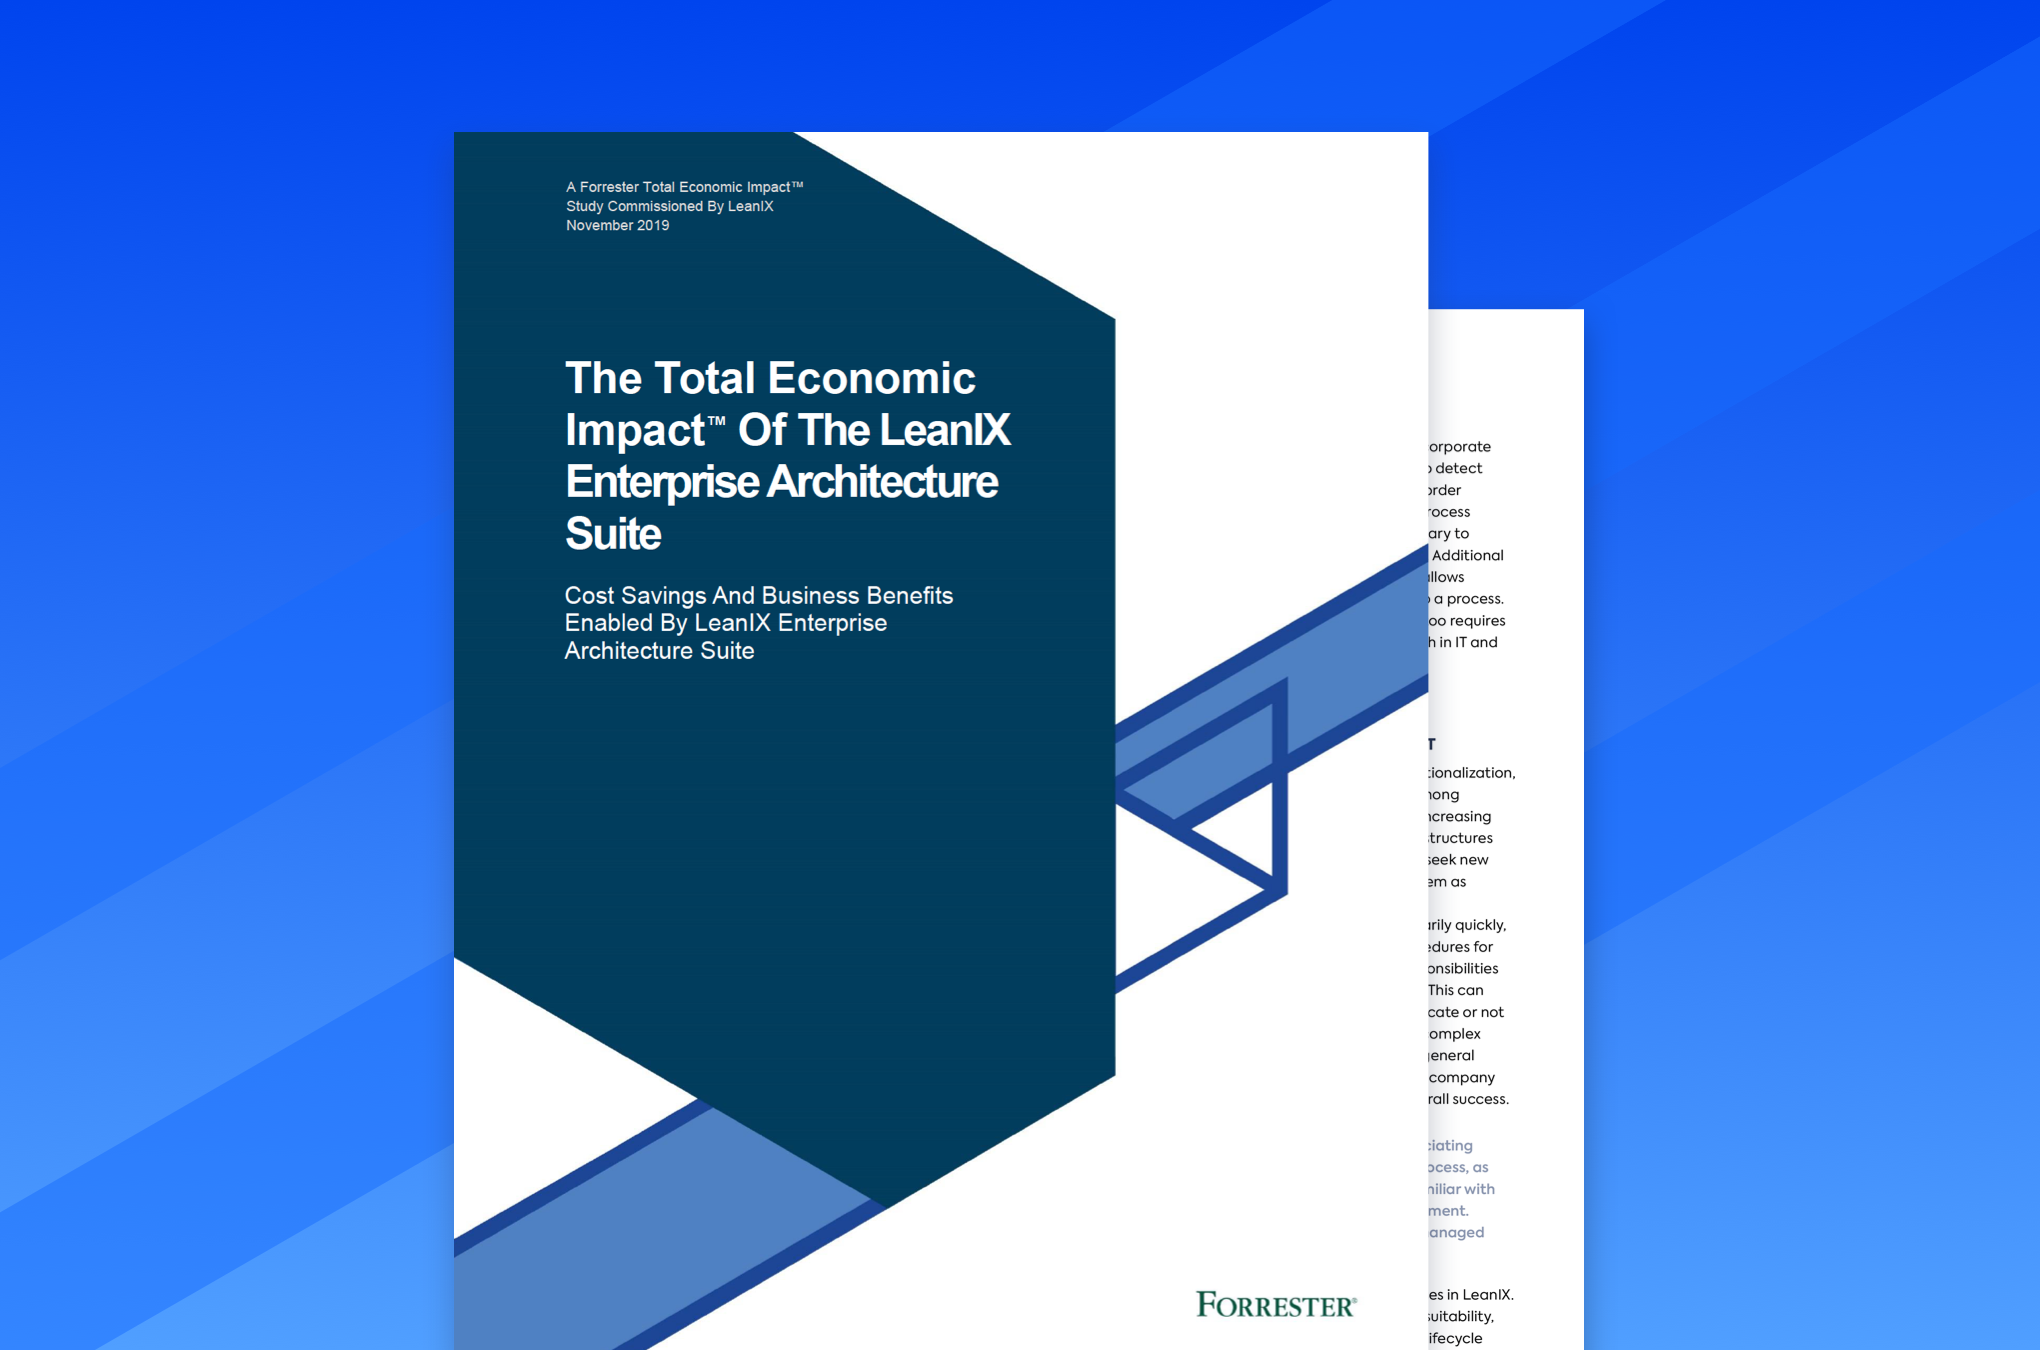 The Total Economic Impact Of The LeanIX Enterprise Architecture Suite